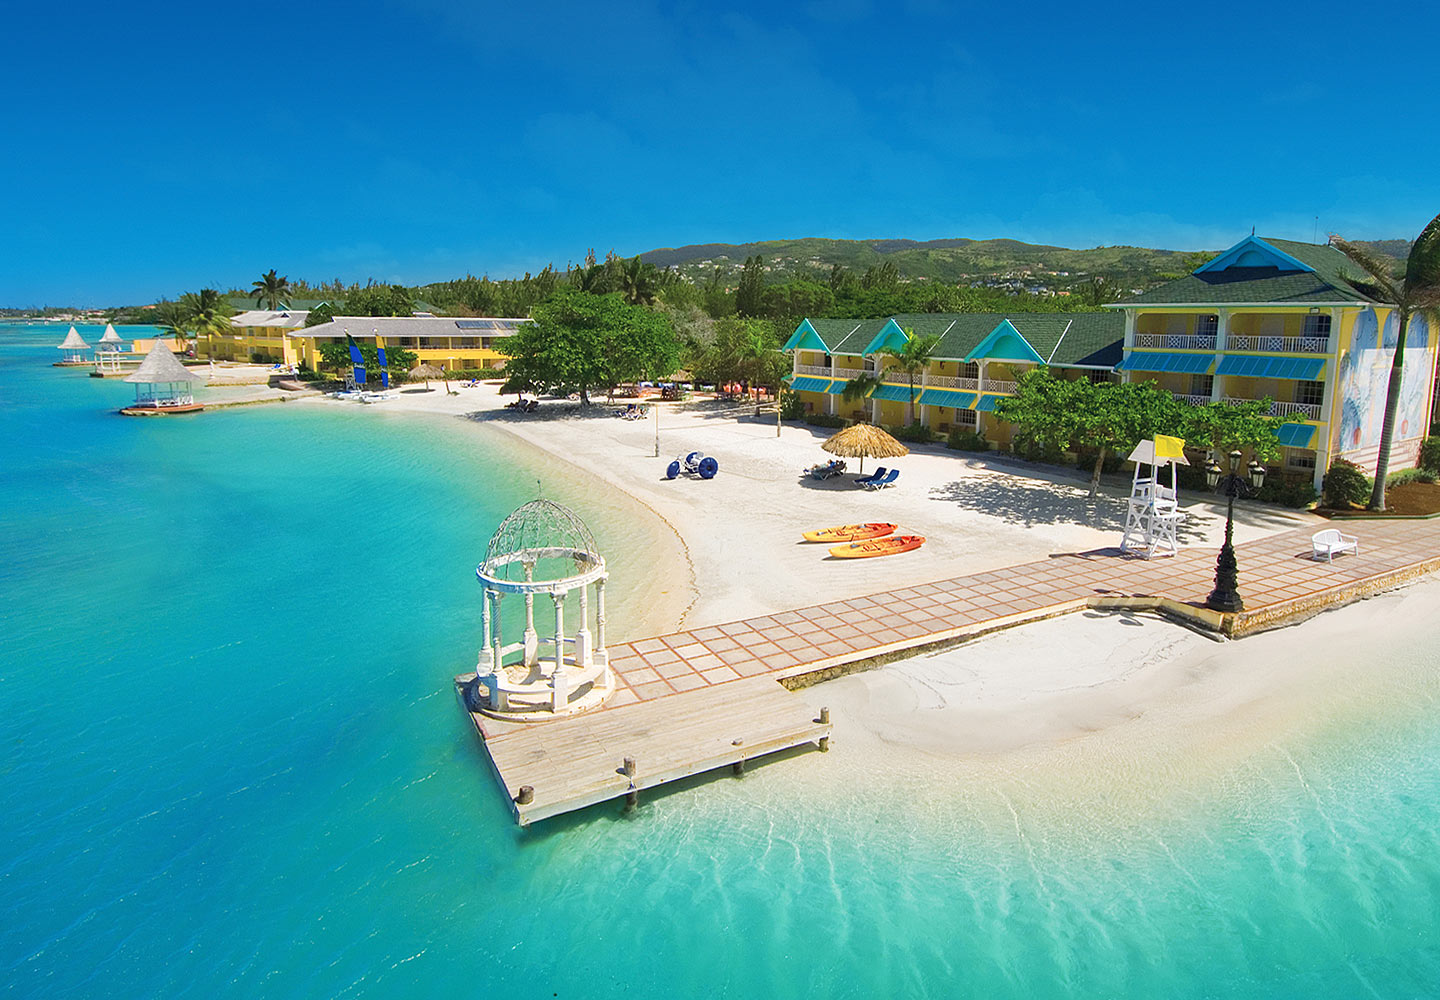 http://www.jamaica-reggae-music-vacation.com/Hotels-In-Montego-Bay-Jamaica.html, Sandals Royal Caribbean Resort